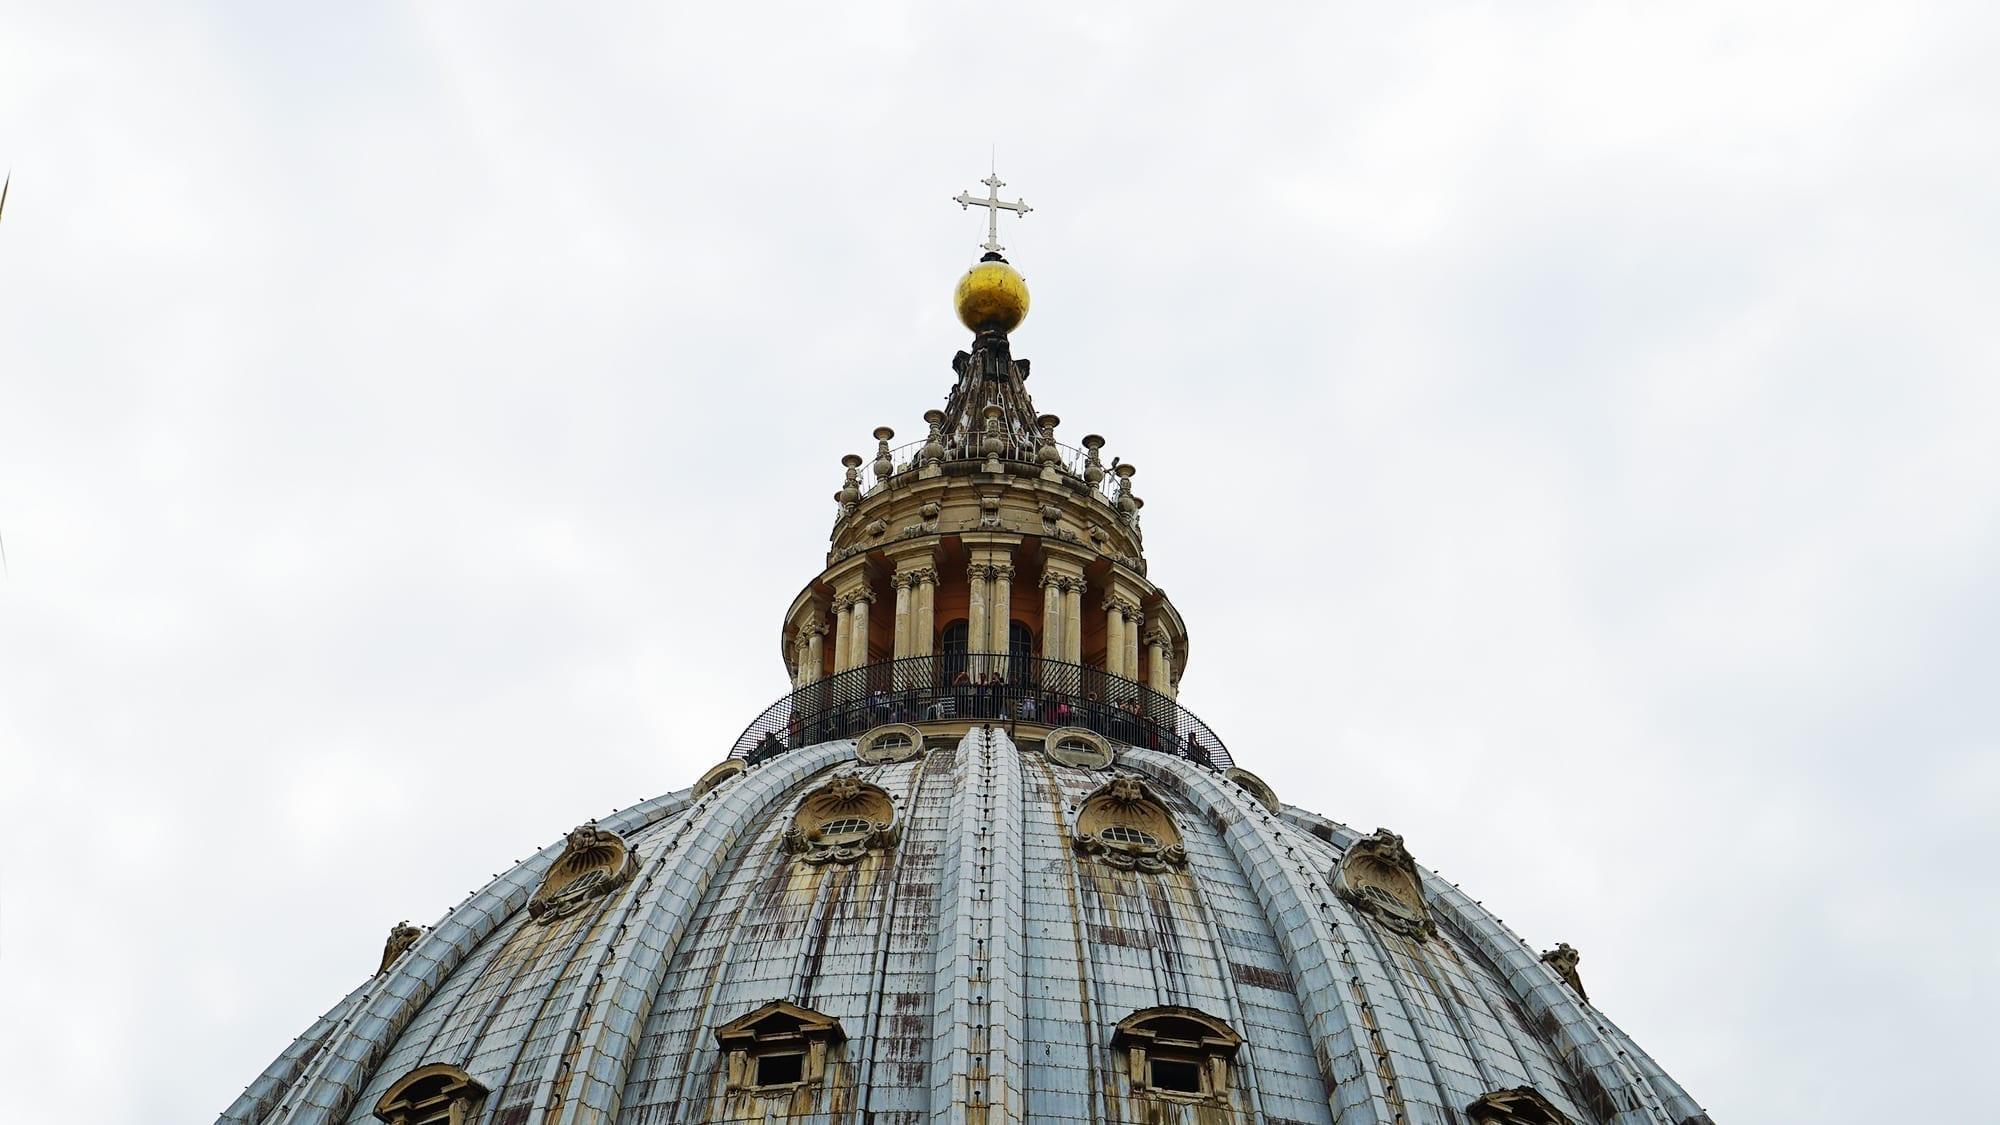 St Peter's Basilica Dome Stairs